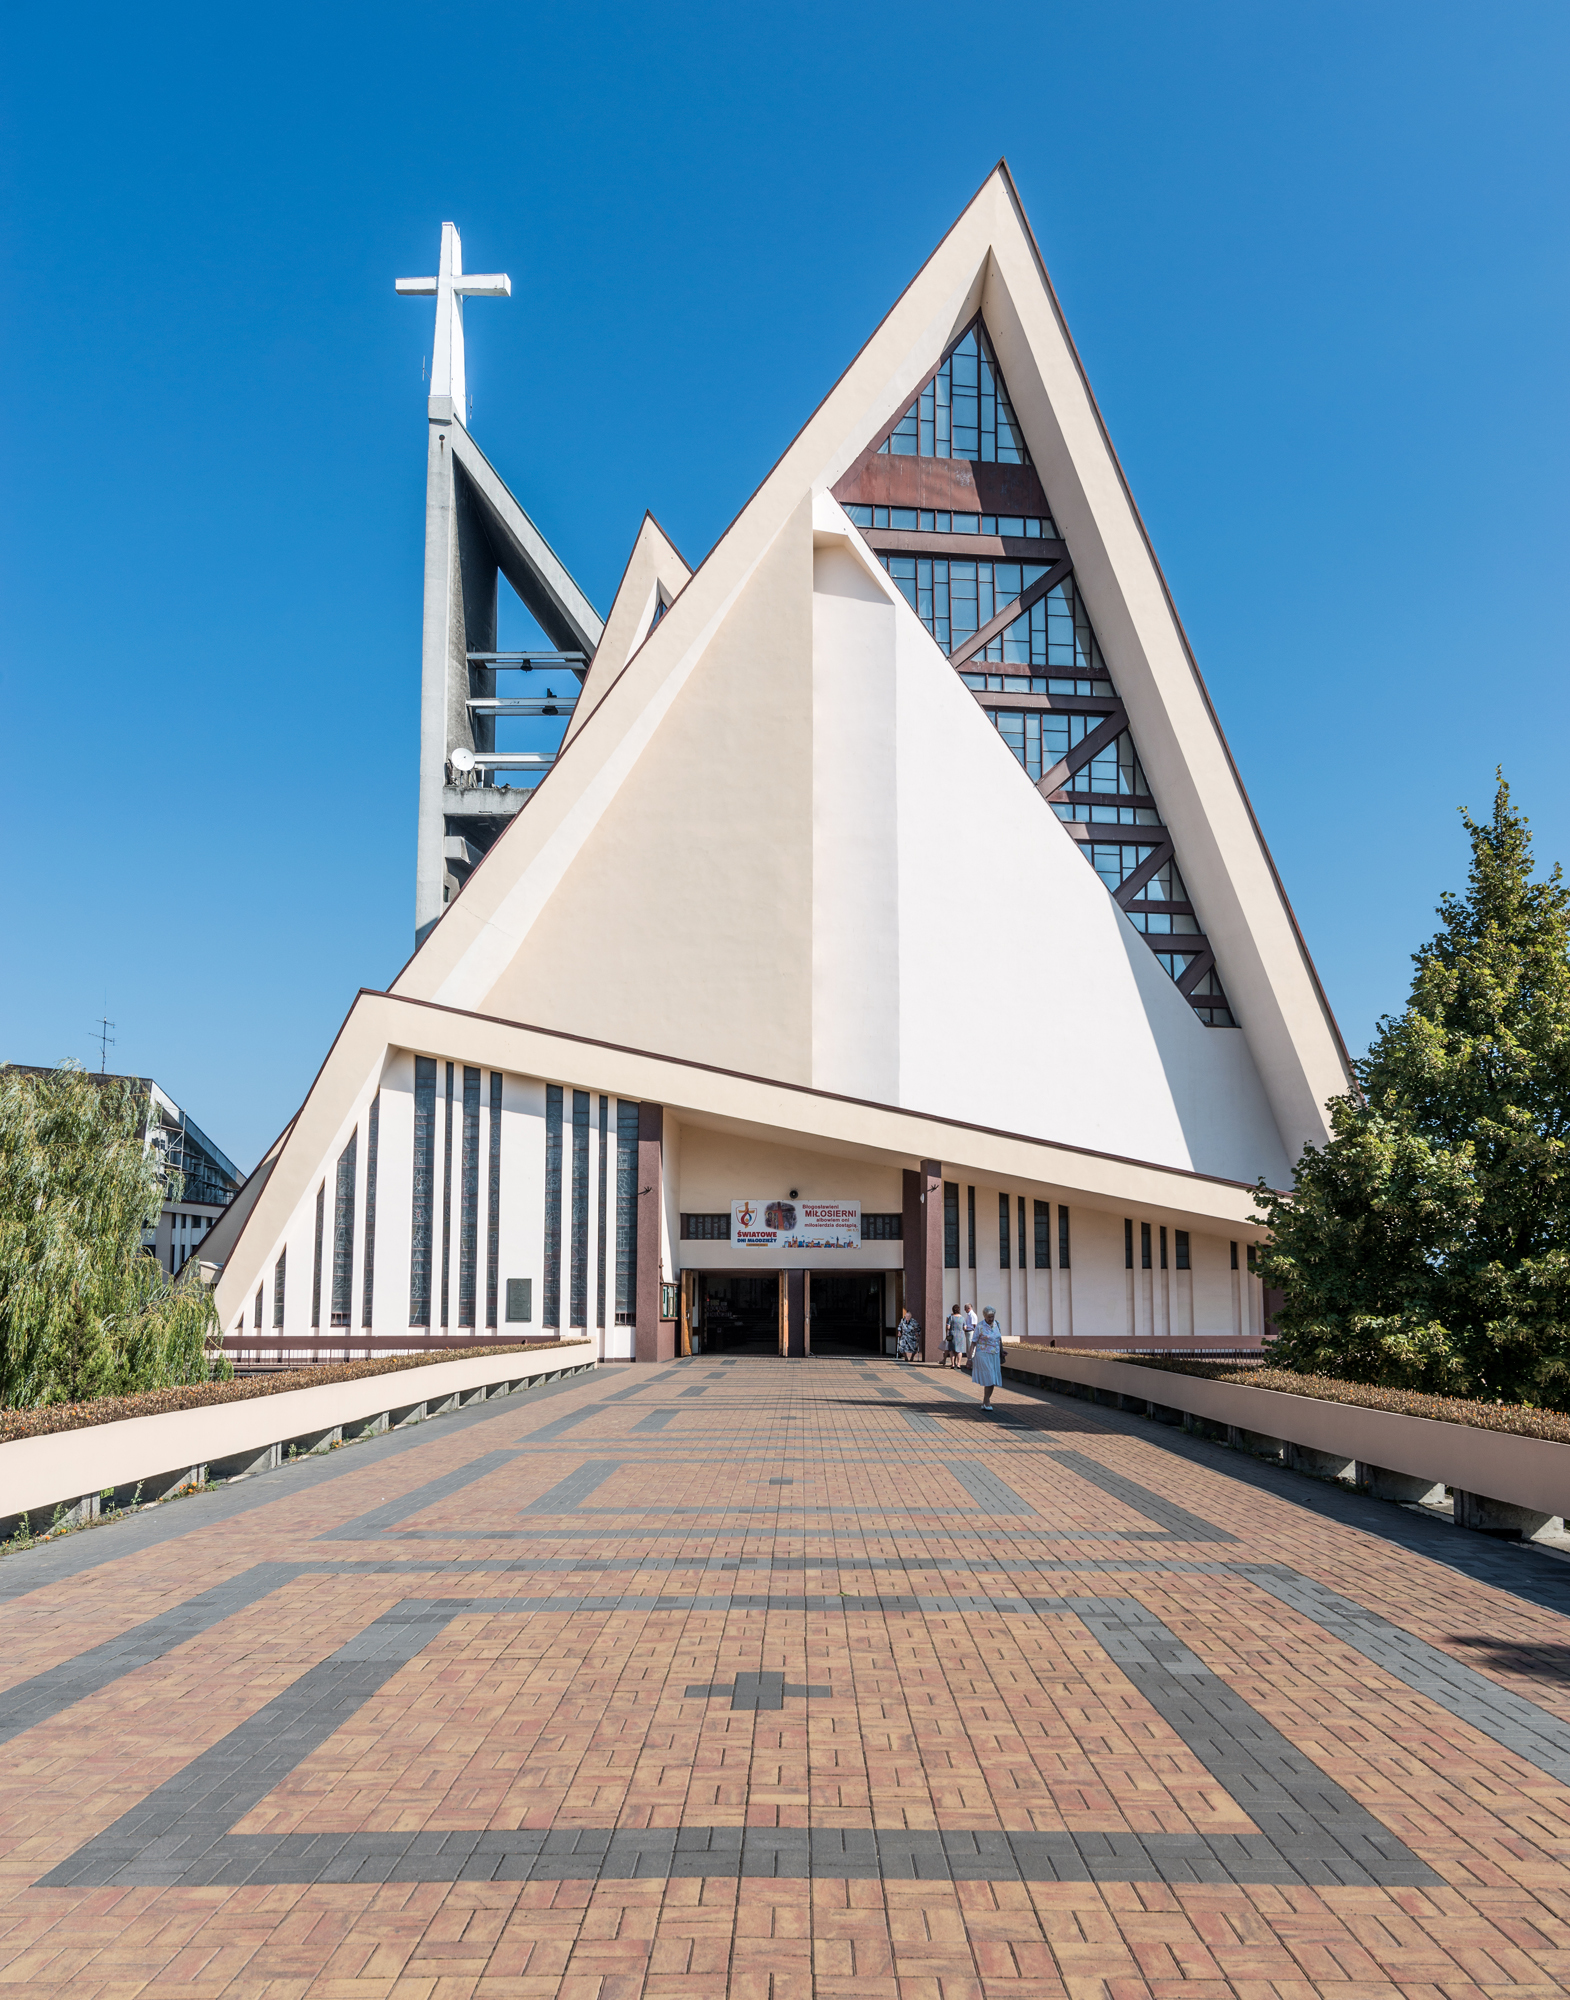 Gallery of these churches are the unrecognized for Modern church youth building design